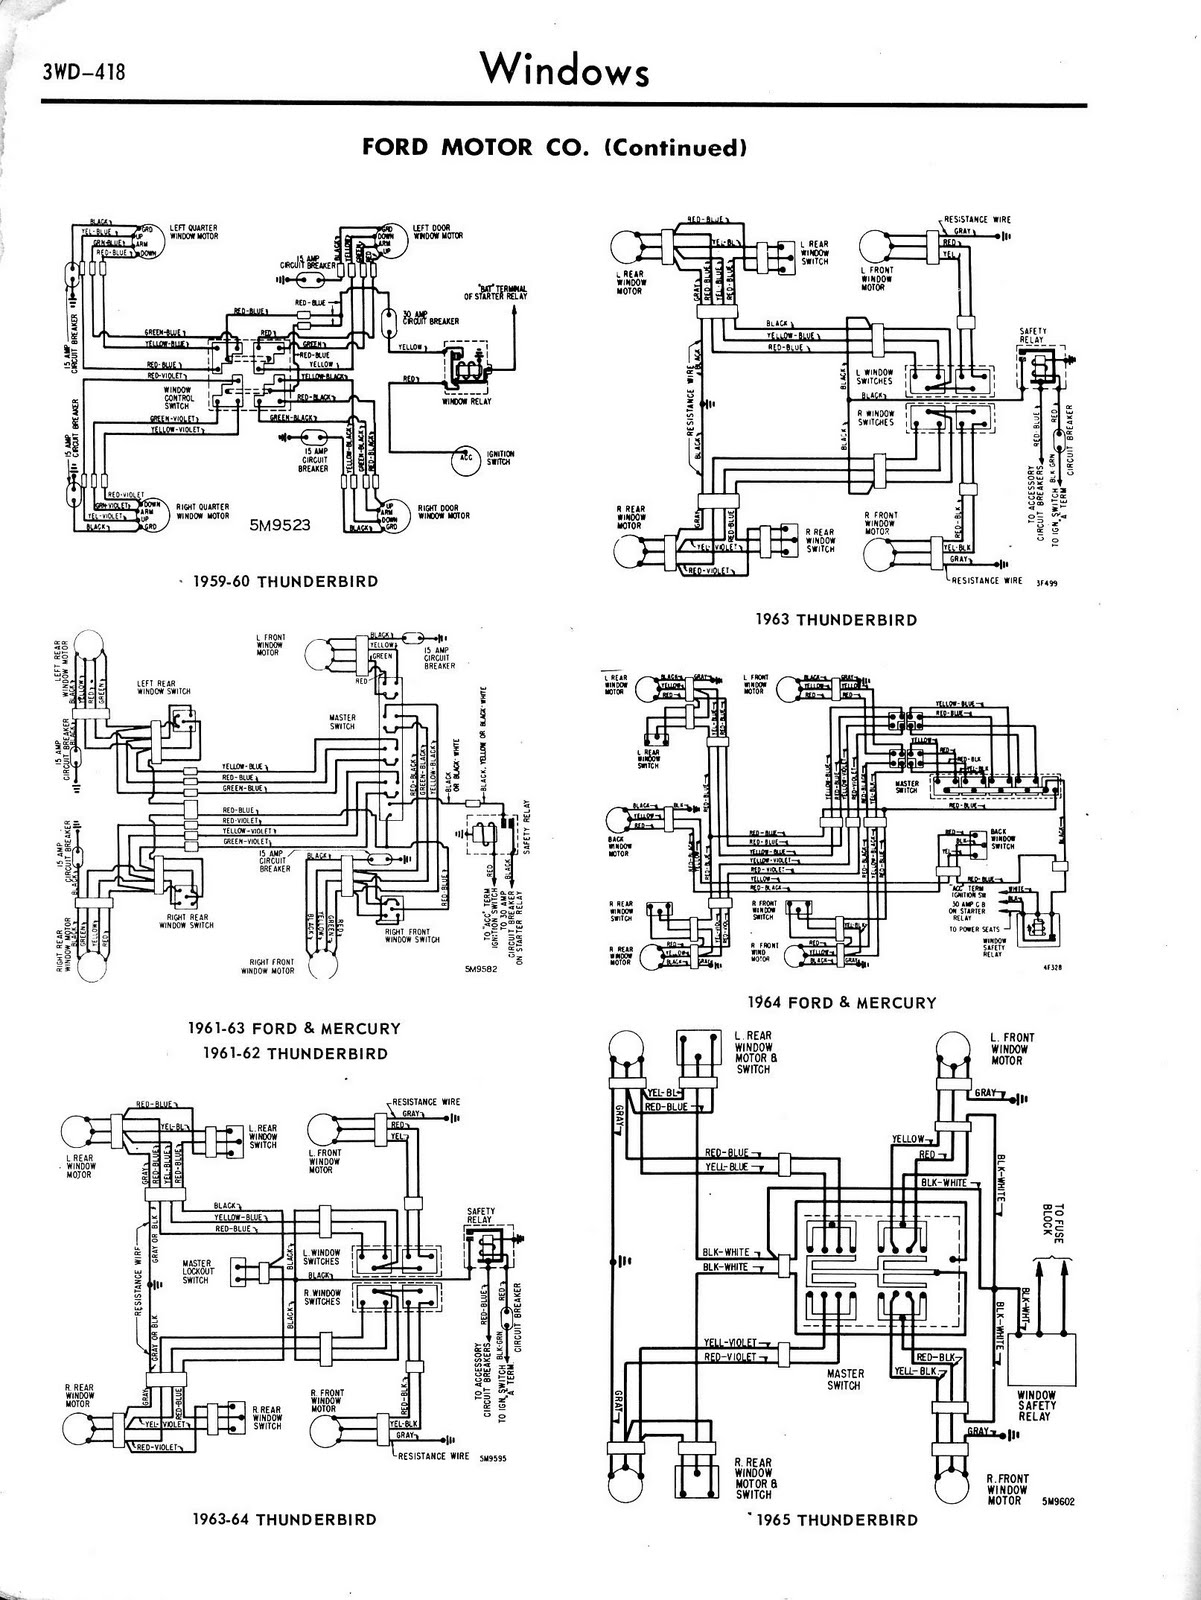 Free Auto Wiring Diagram: 1965 Ford Thunderbird Window